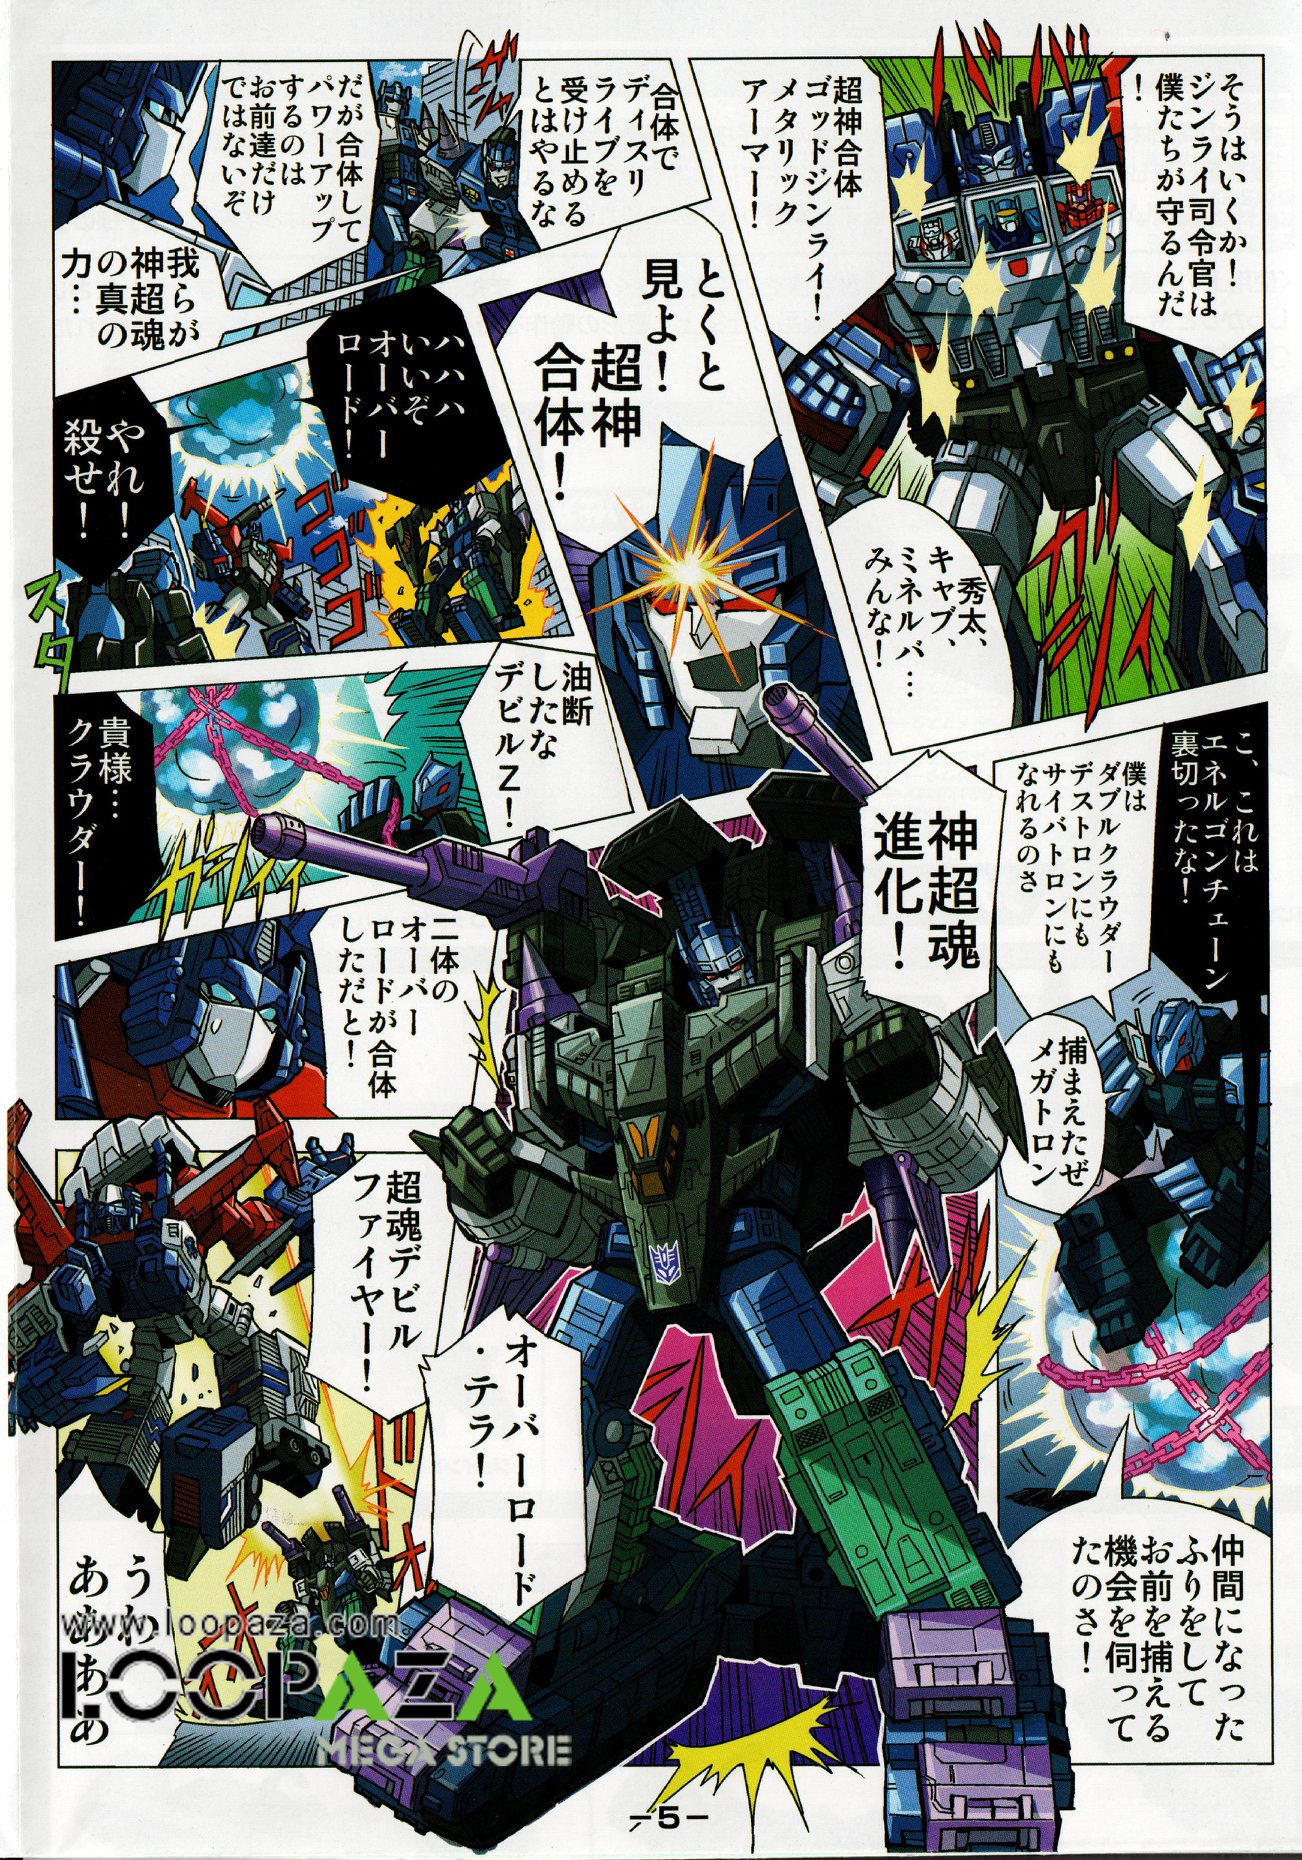 Takara Lg 60 Manga And Bio Card Scans New Overlord